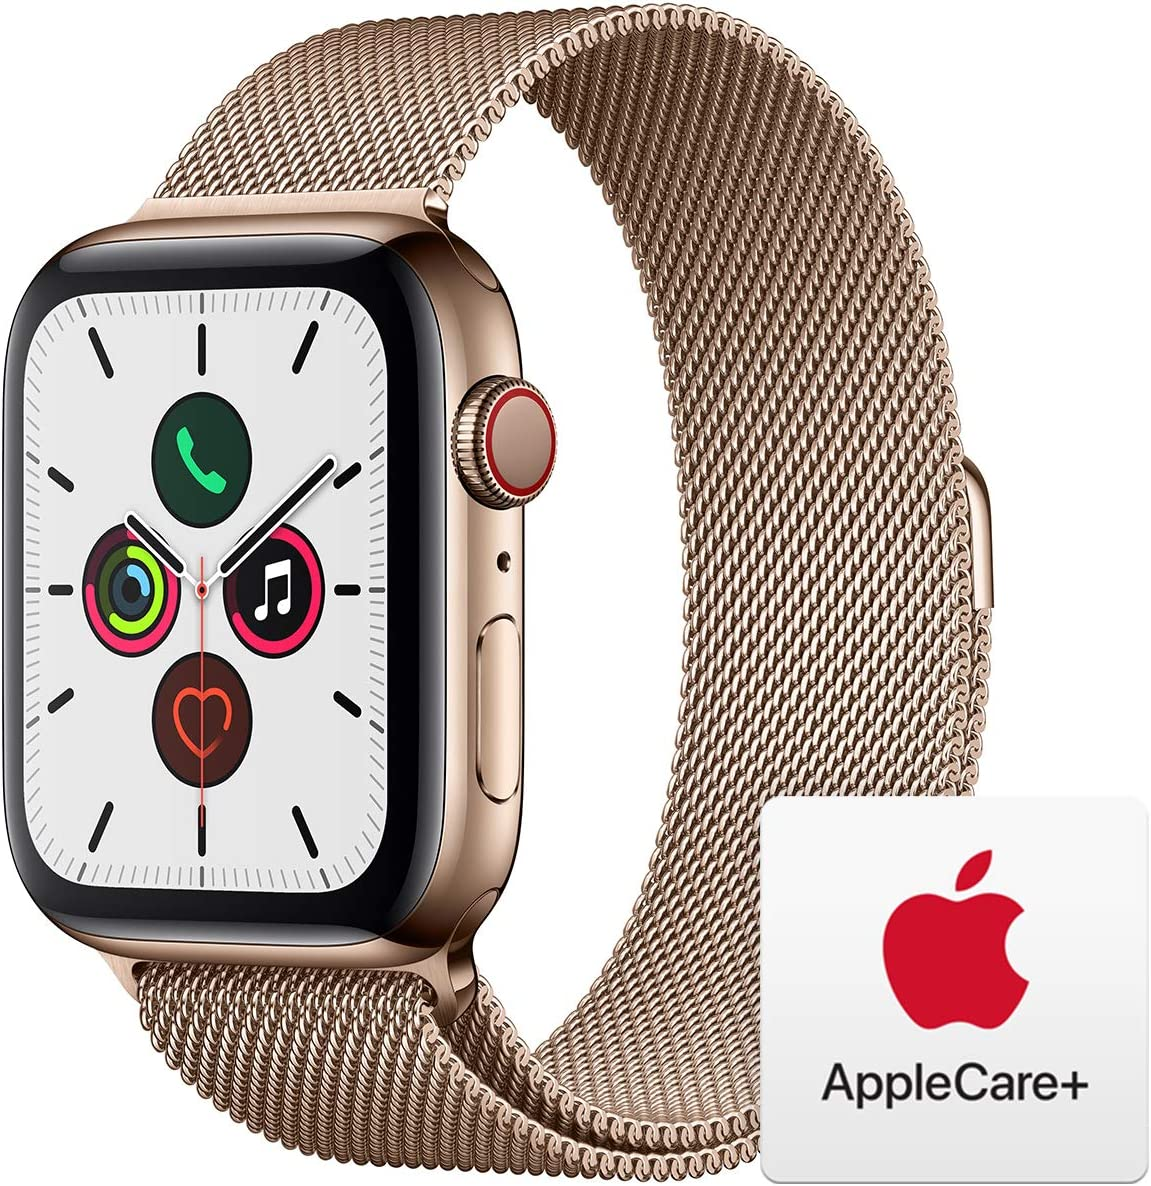 Apple Watch Series 5 (GPS+Cellular, 44mm) - Gold Stainless Steel Case with Gold Milanese Loop with AppleCare+ Bundle